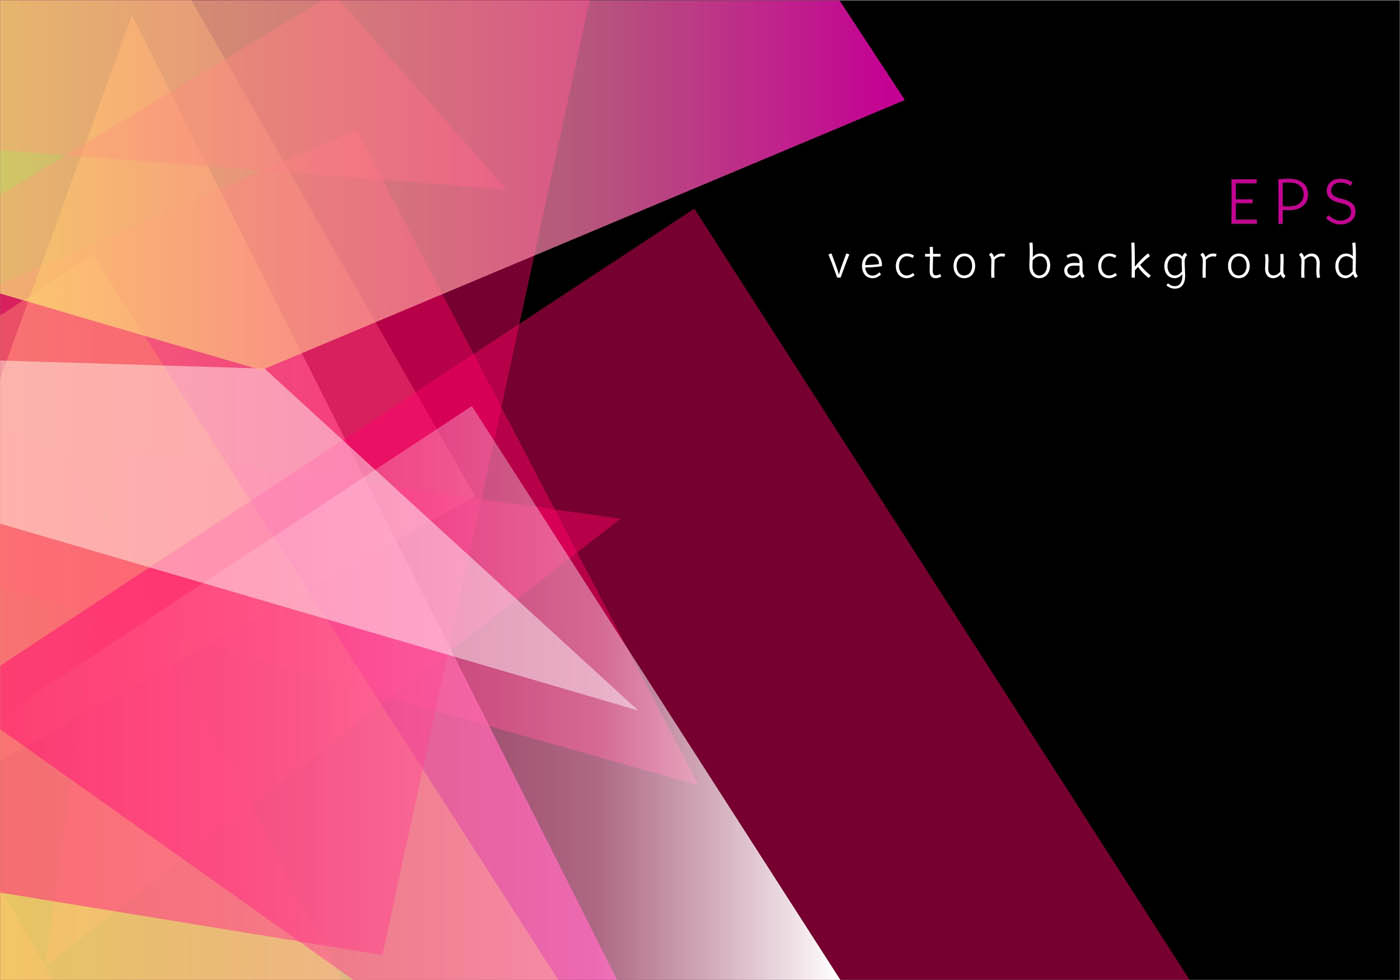 Pink Geometric Prizma Vector Background - Download Free ...